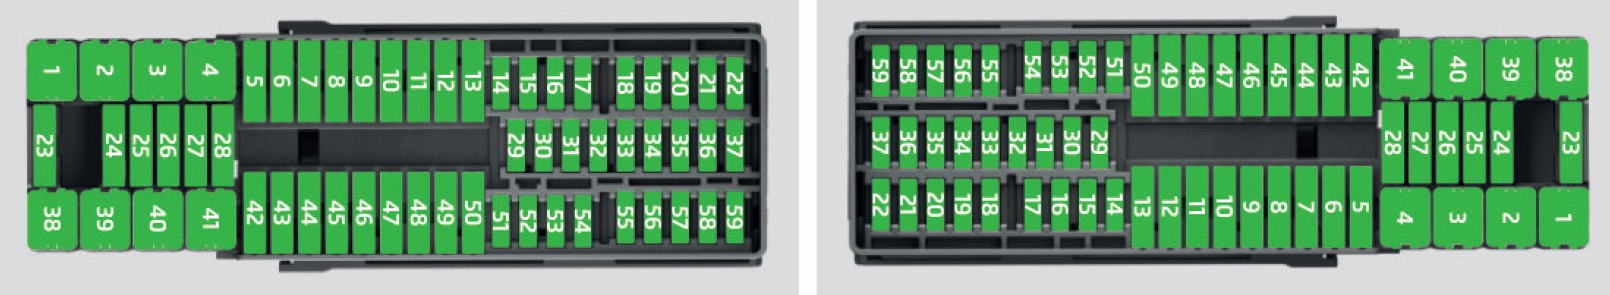 skoda rapid fuse box dashboard panel left hand vehicle right hand vehicle 2017 skoda rapid (2017) fuse box diagram auto genius green fuse botanicals at gsmx.co